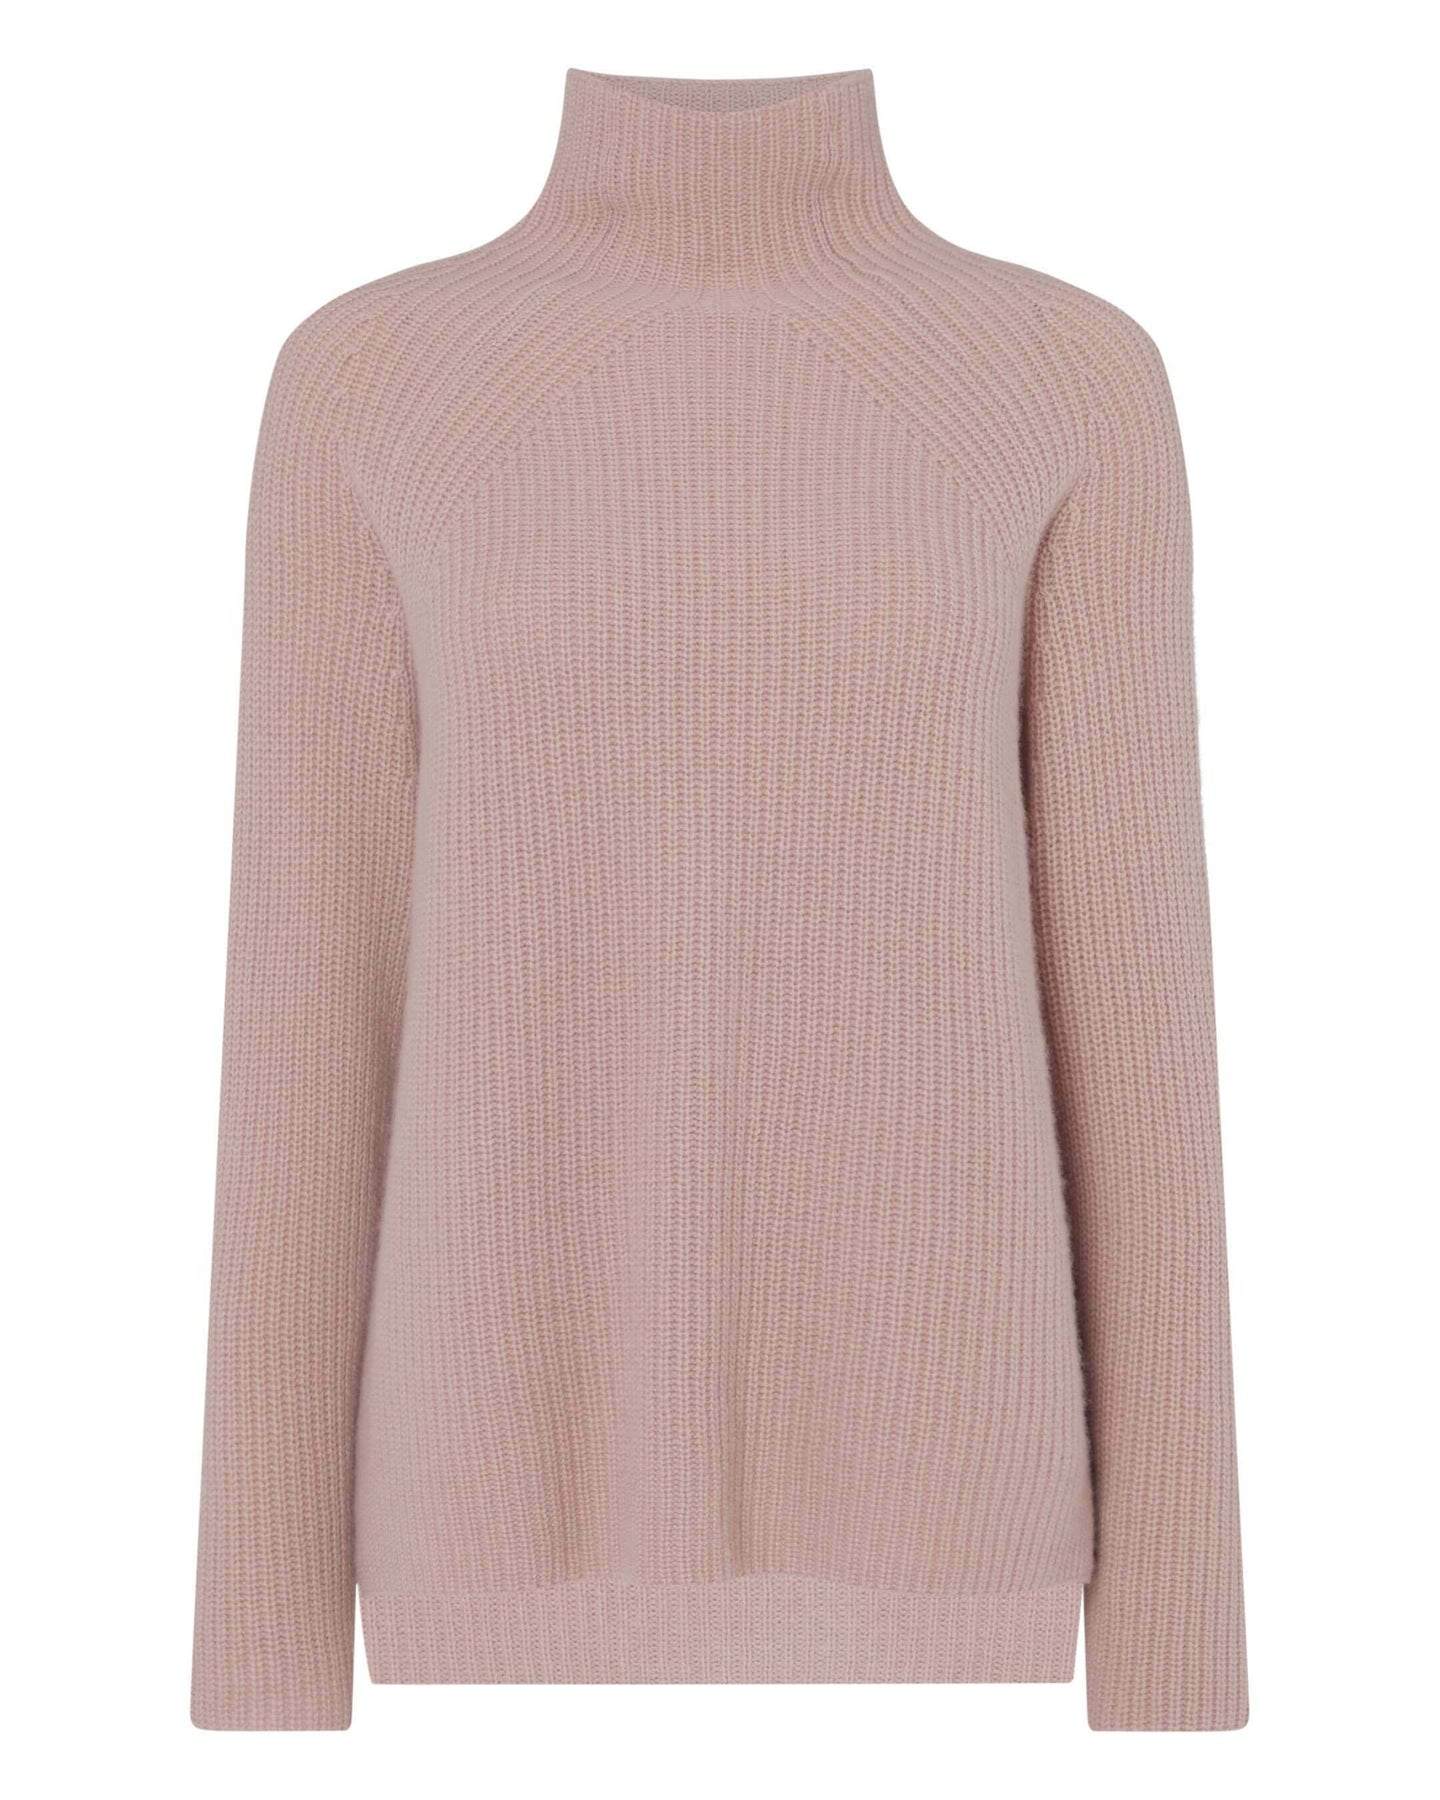 High Neck Ribbed Cashmere Sweater Desert Sand Brown 2